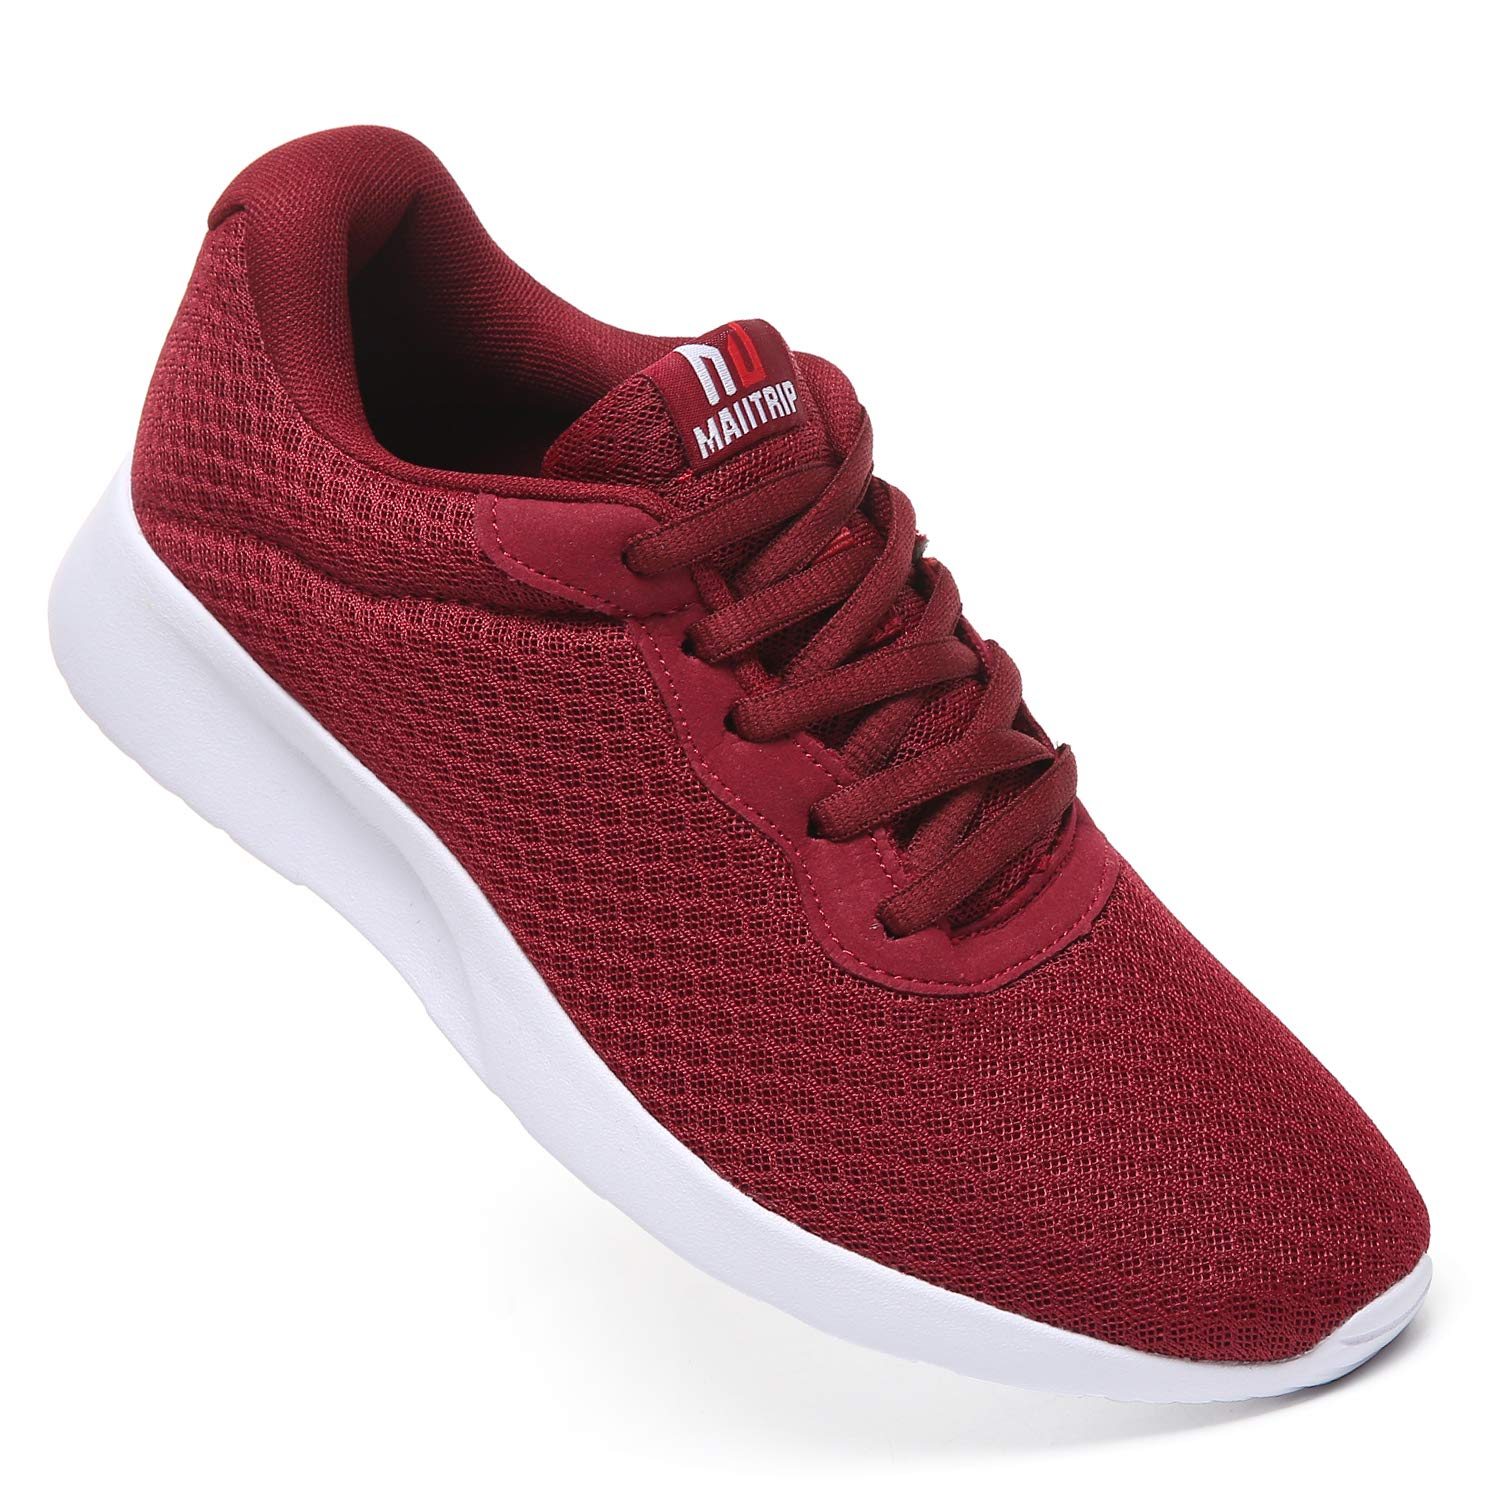 MAITRIP Mens Gym Shoes,Athletic Running Shoes,Lightweight Breathable Mesh Casual Tennis Sports Workout Walking Sneakers,Wine Red,Size 7